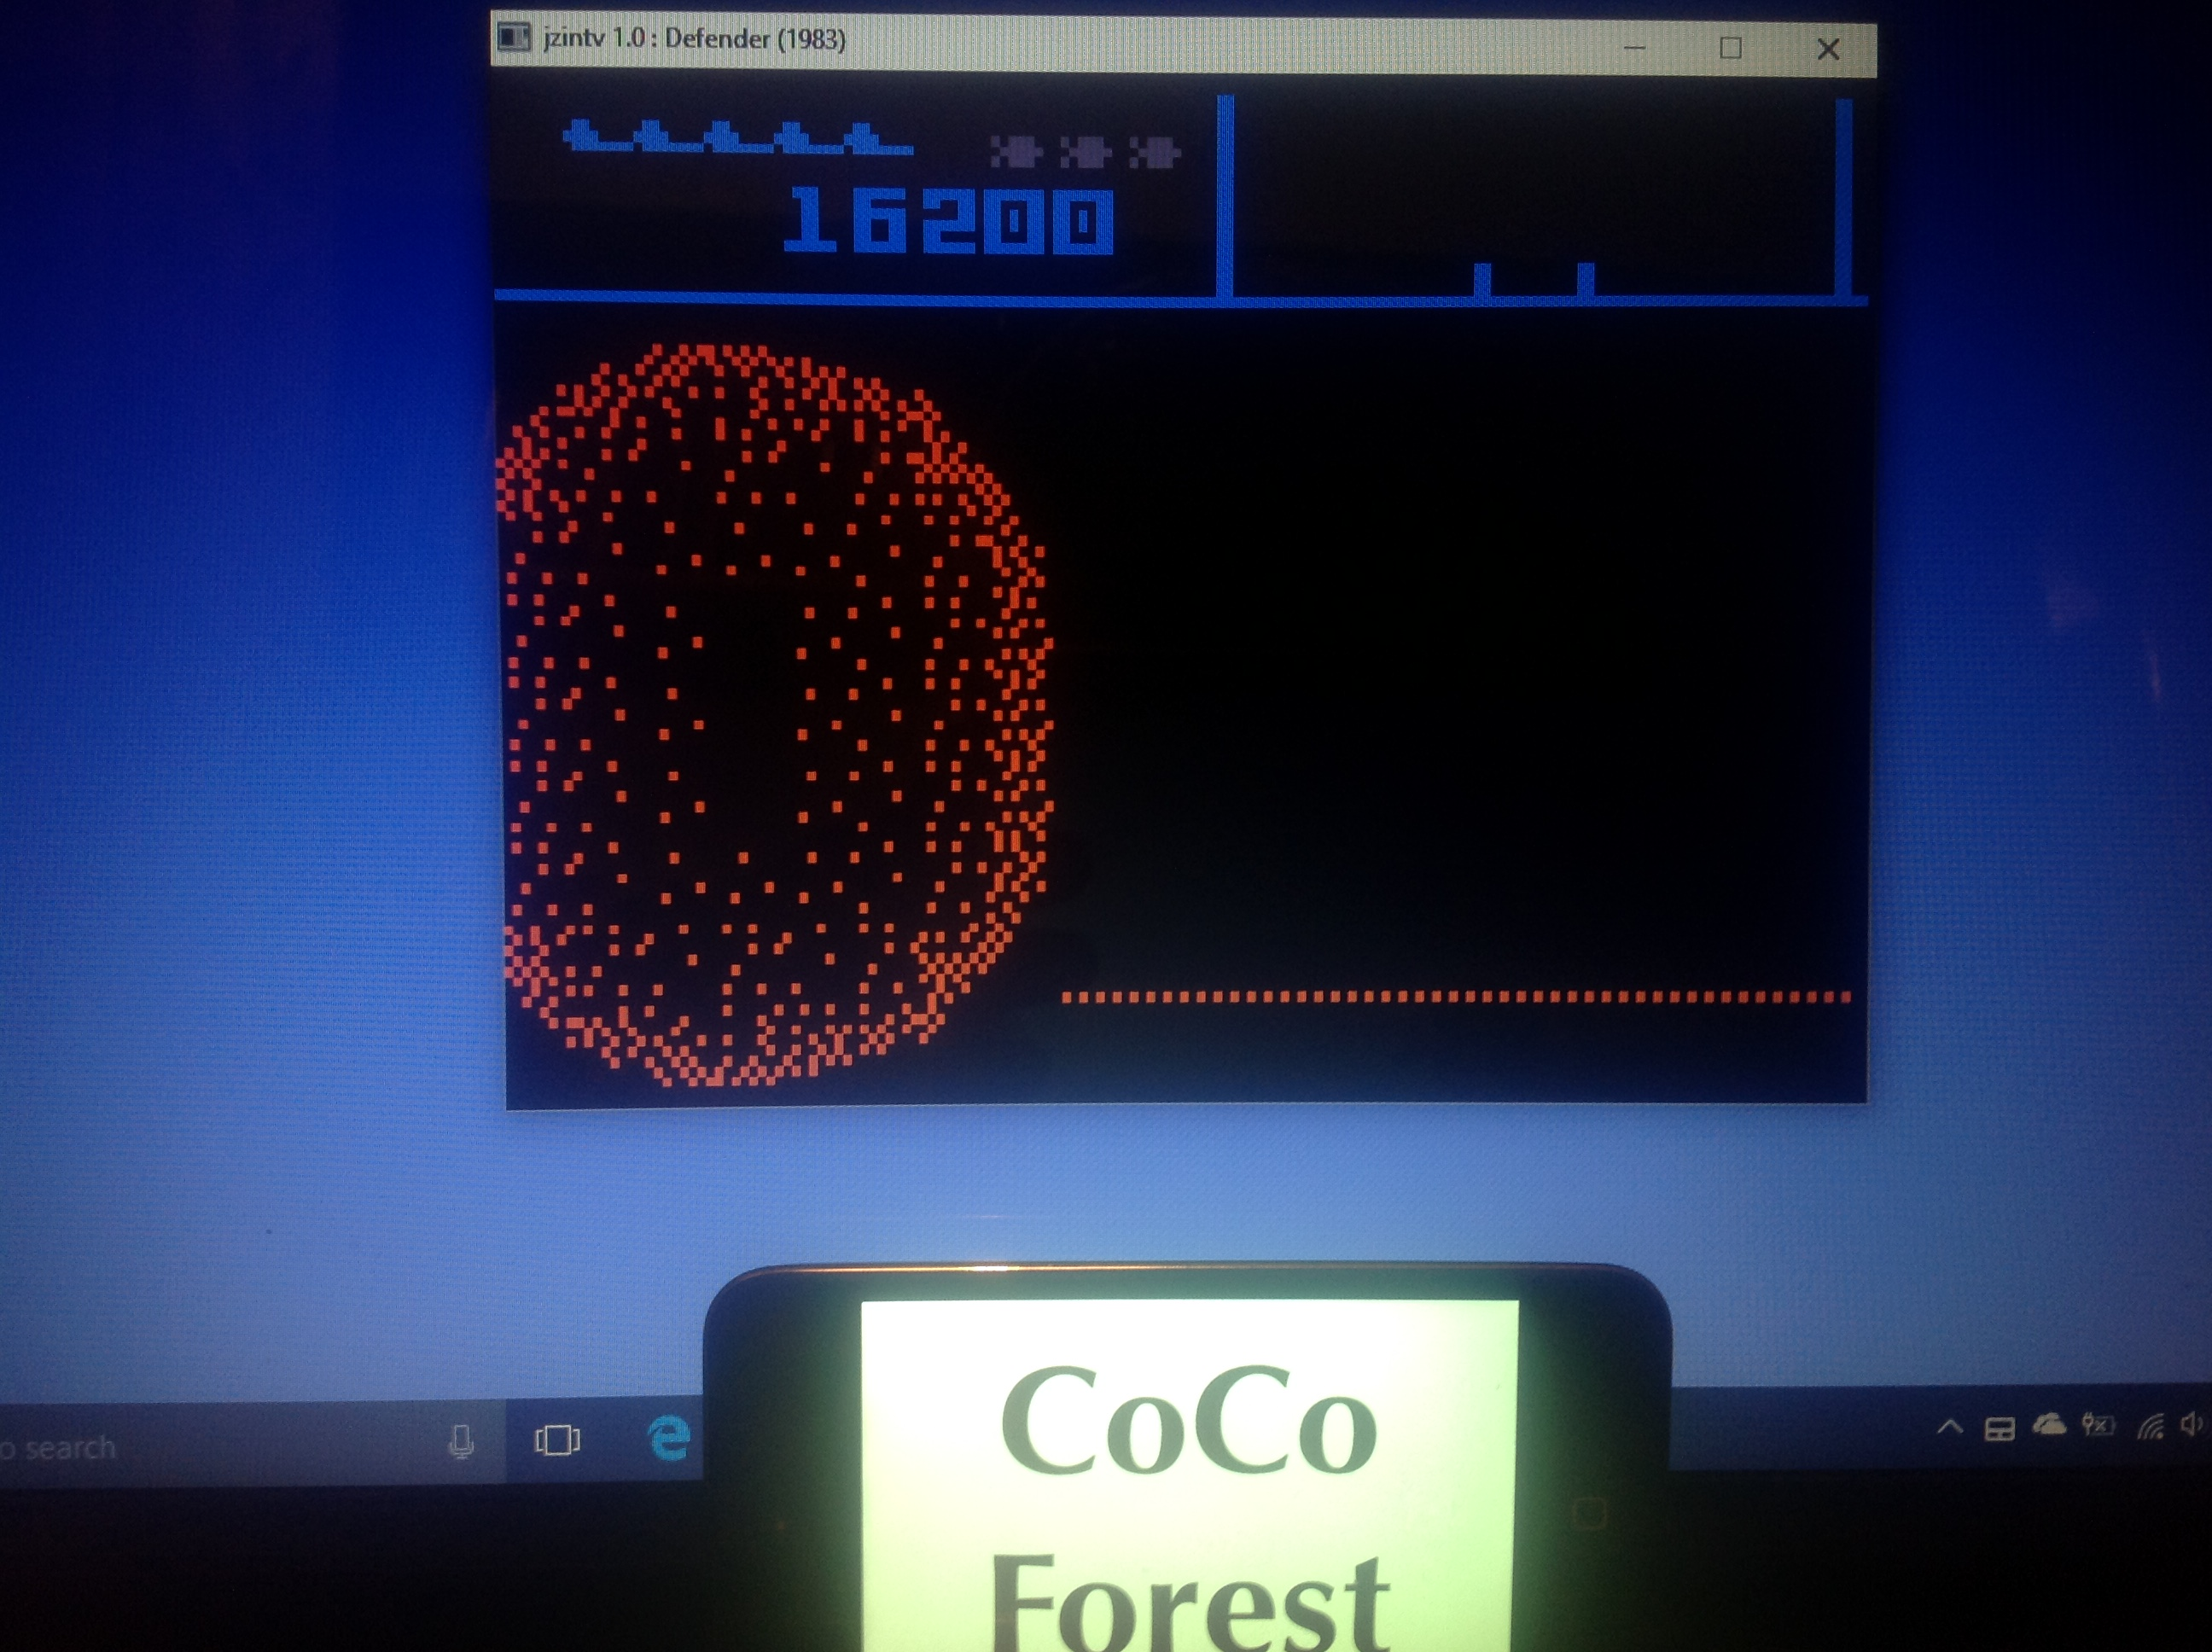 CoCoForest: Defender (Intellivision Emulated) 16,200 points on 2018-01-24 11:24:13